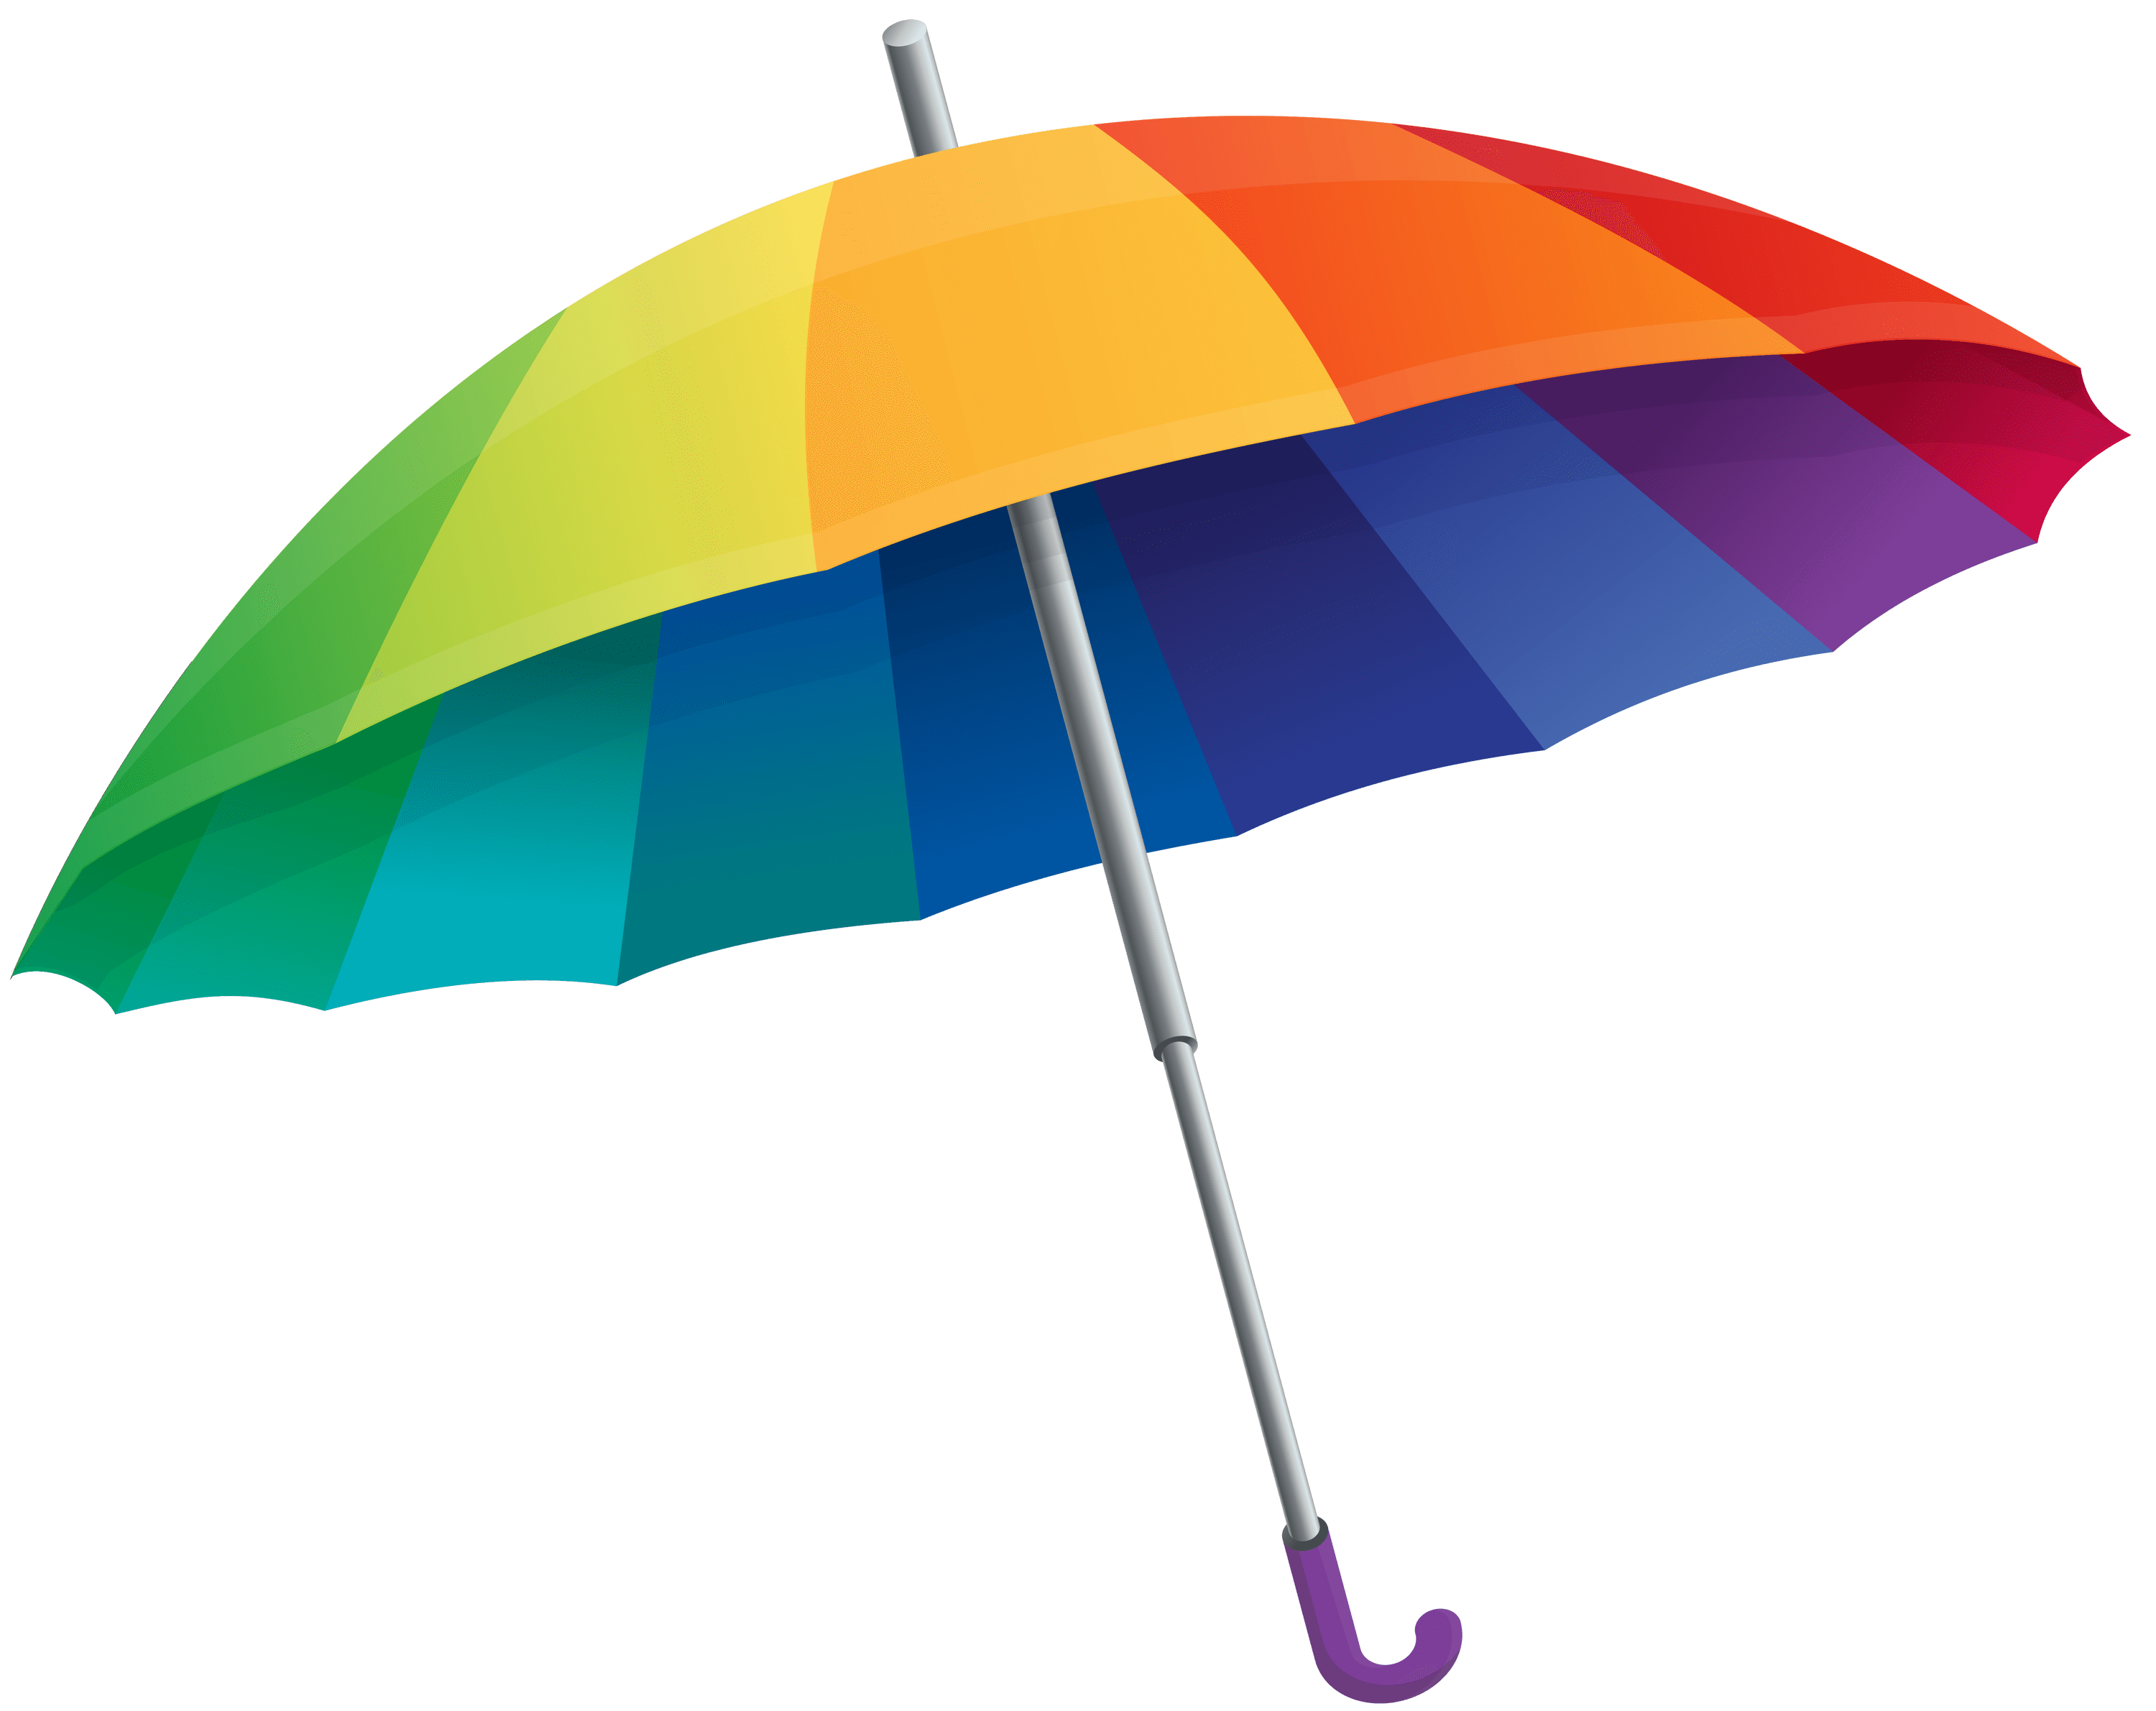 umbrella rainbow transparent png stickpng #18656